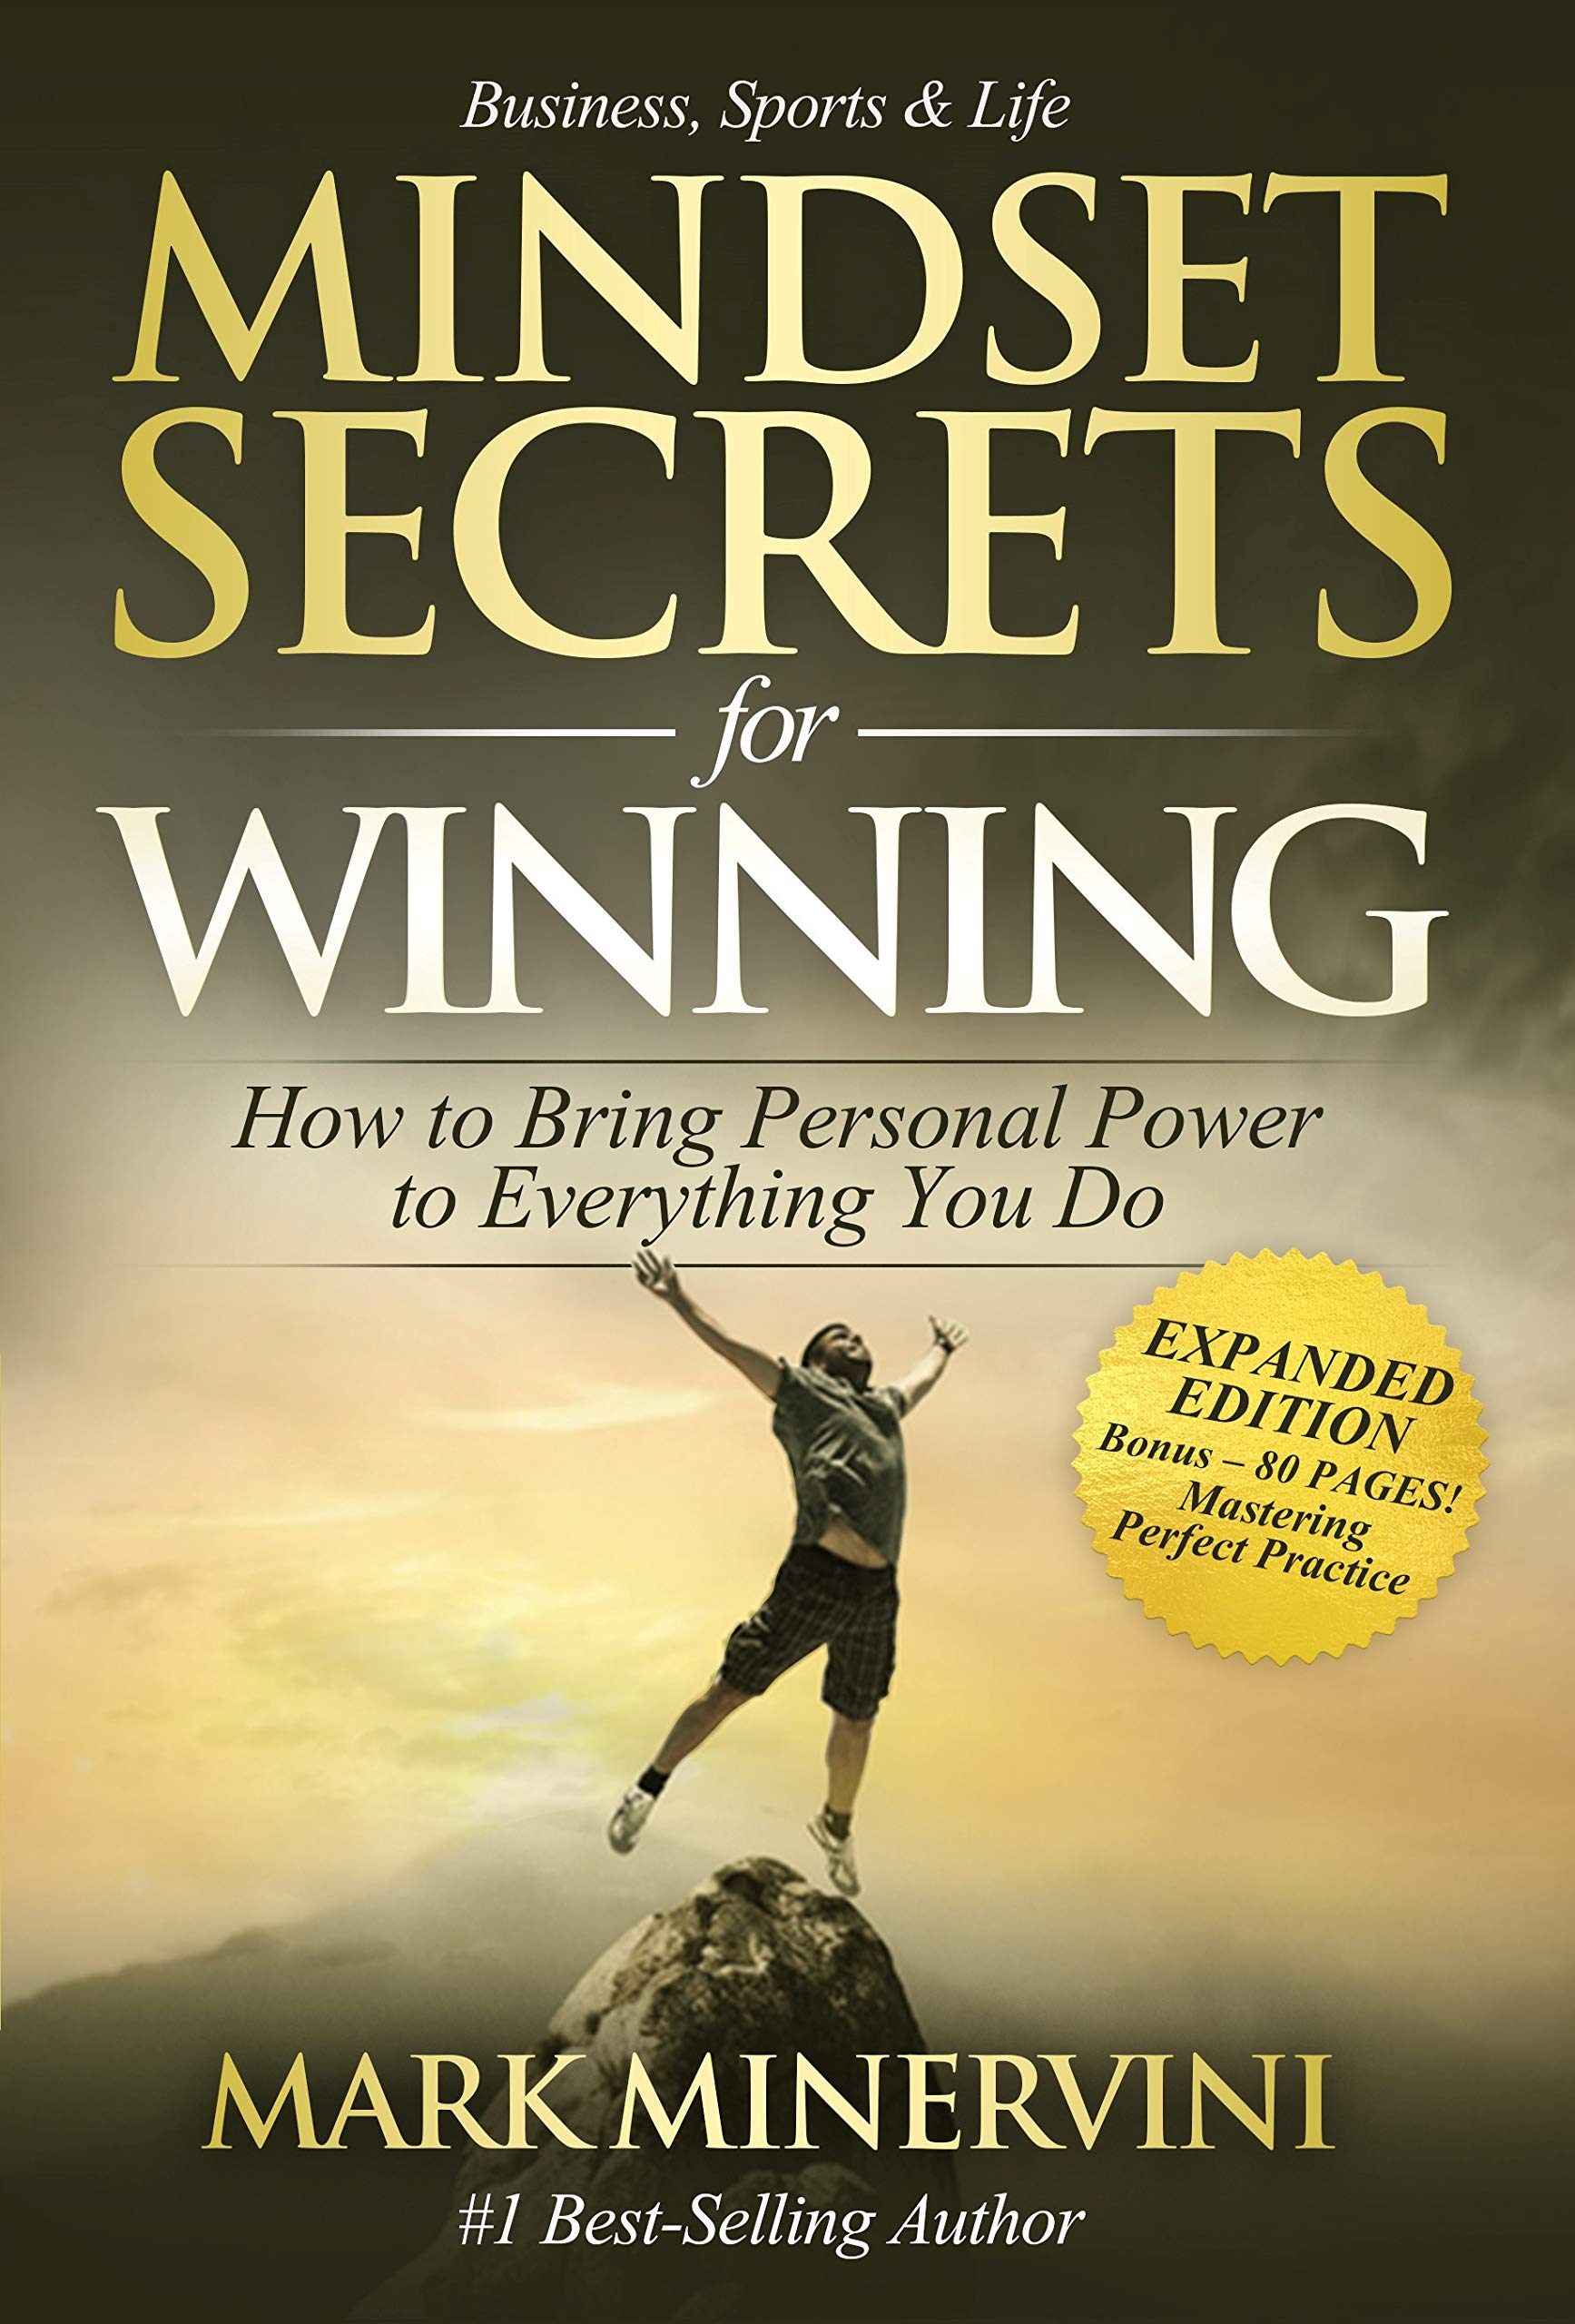 Mindset Secrets for Winning: How to Bring Personal Power to Everything You Do – EXPANDED EDITION – Bonus 80 Pages